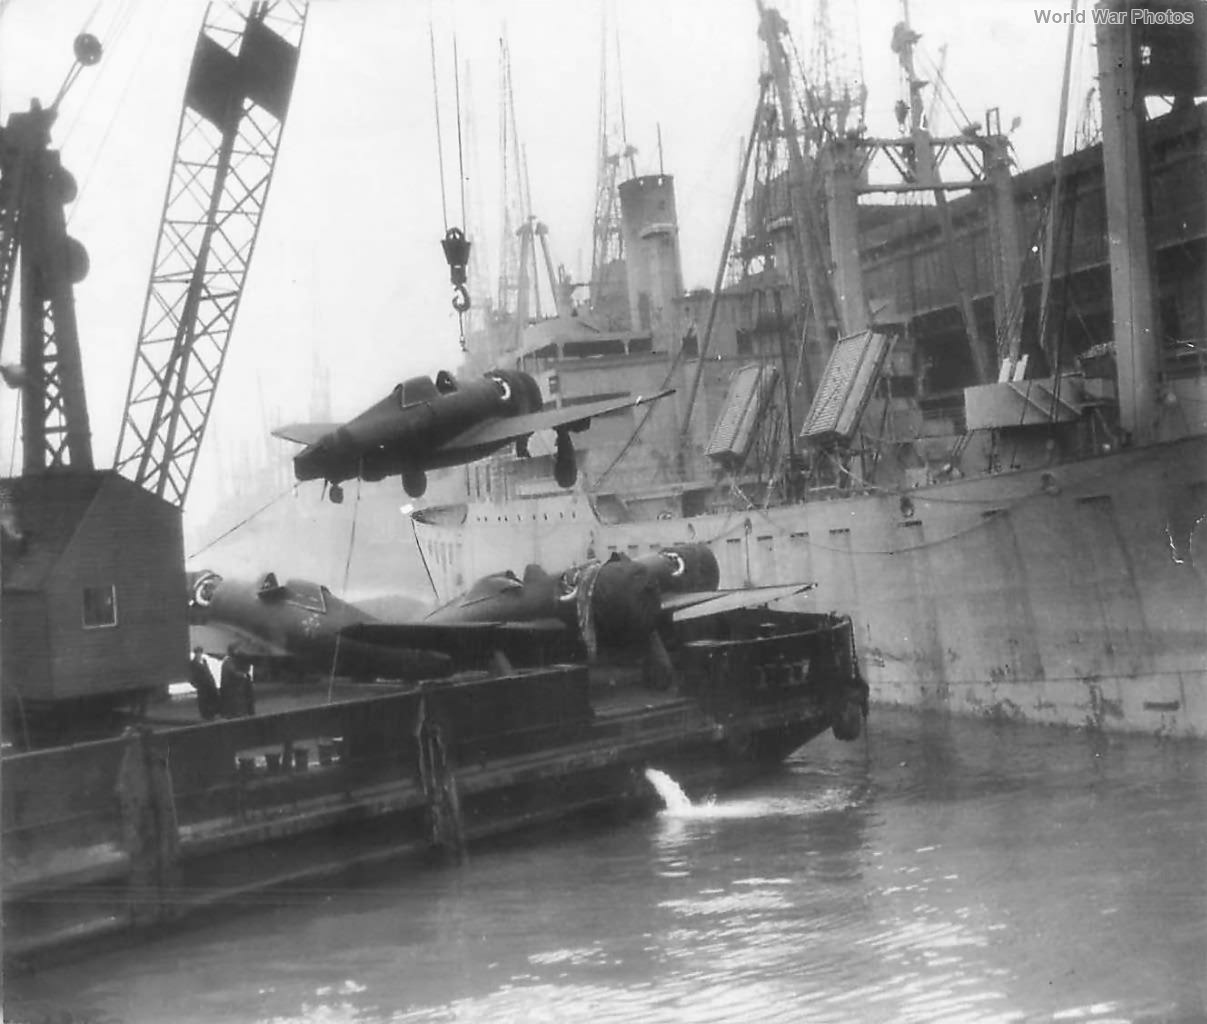 P-47 Hoisted from Liberty Ship Enroute to Airfield in England